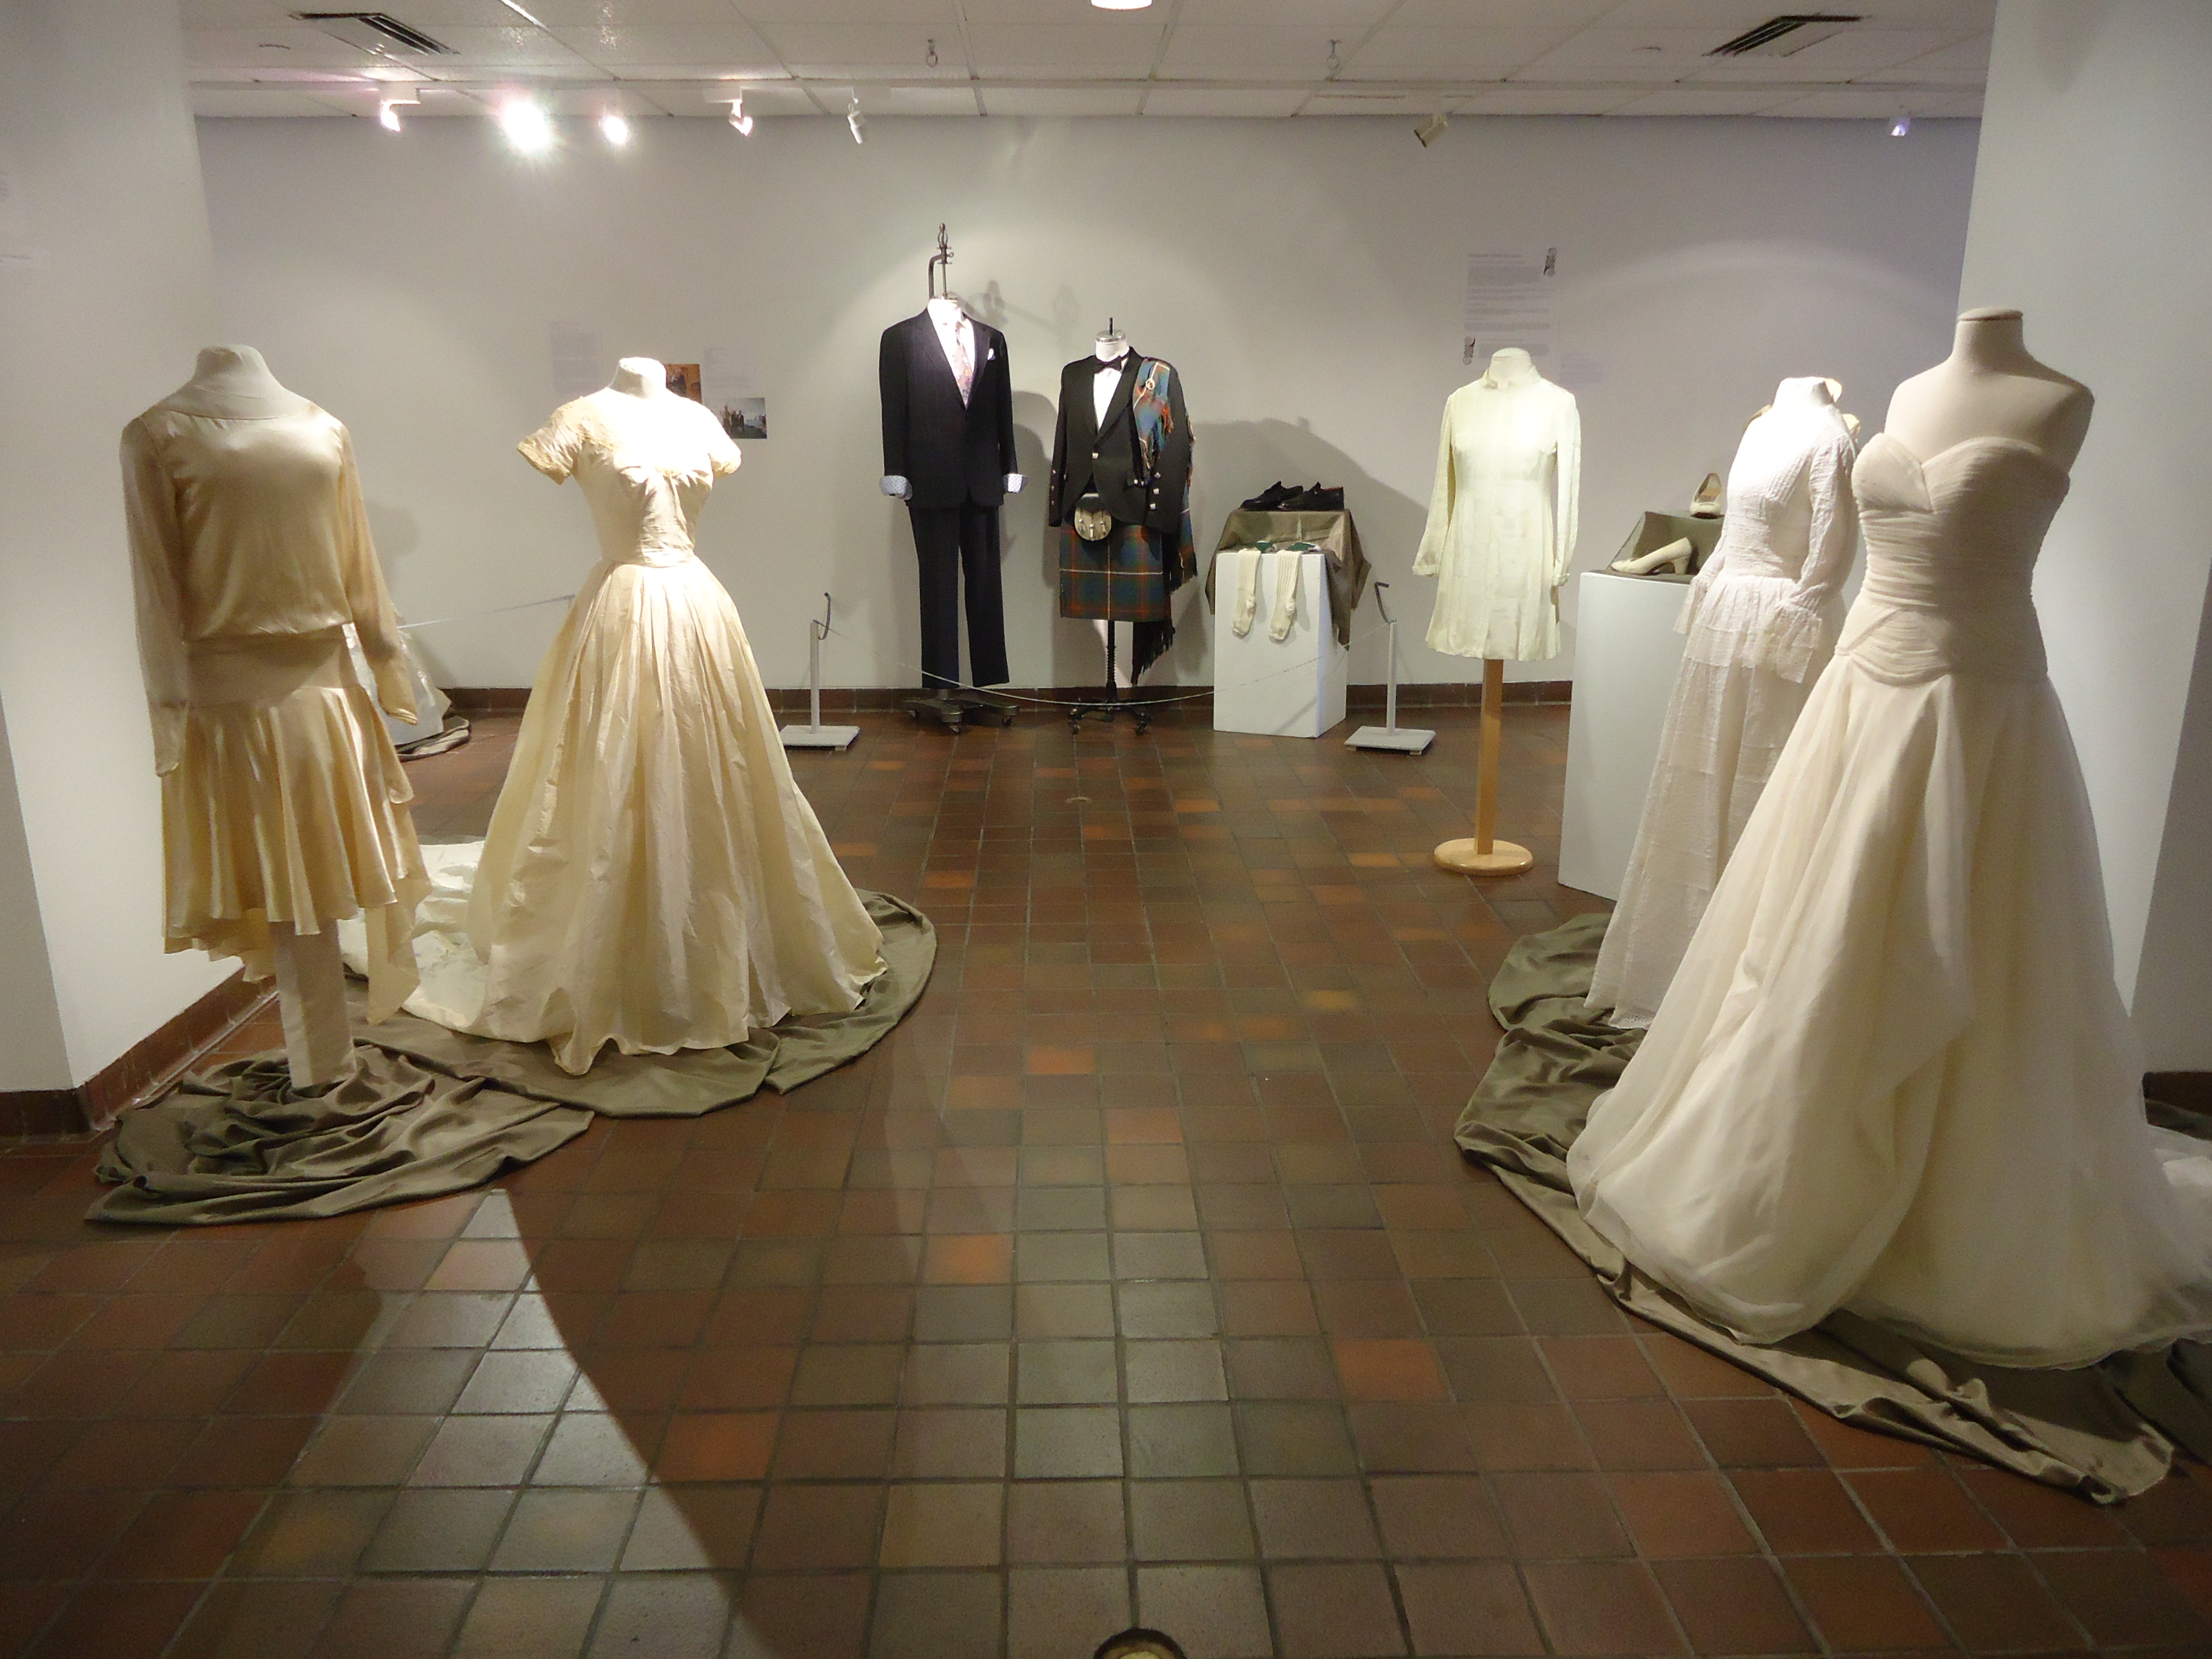 an image of 5 very different wedding dresses and 2 groom's outfits